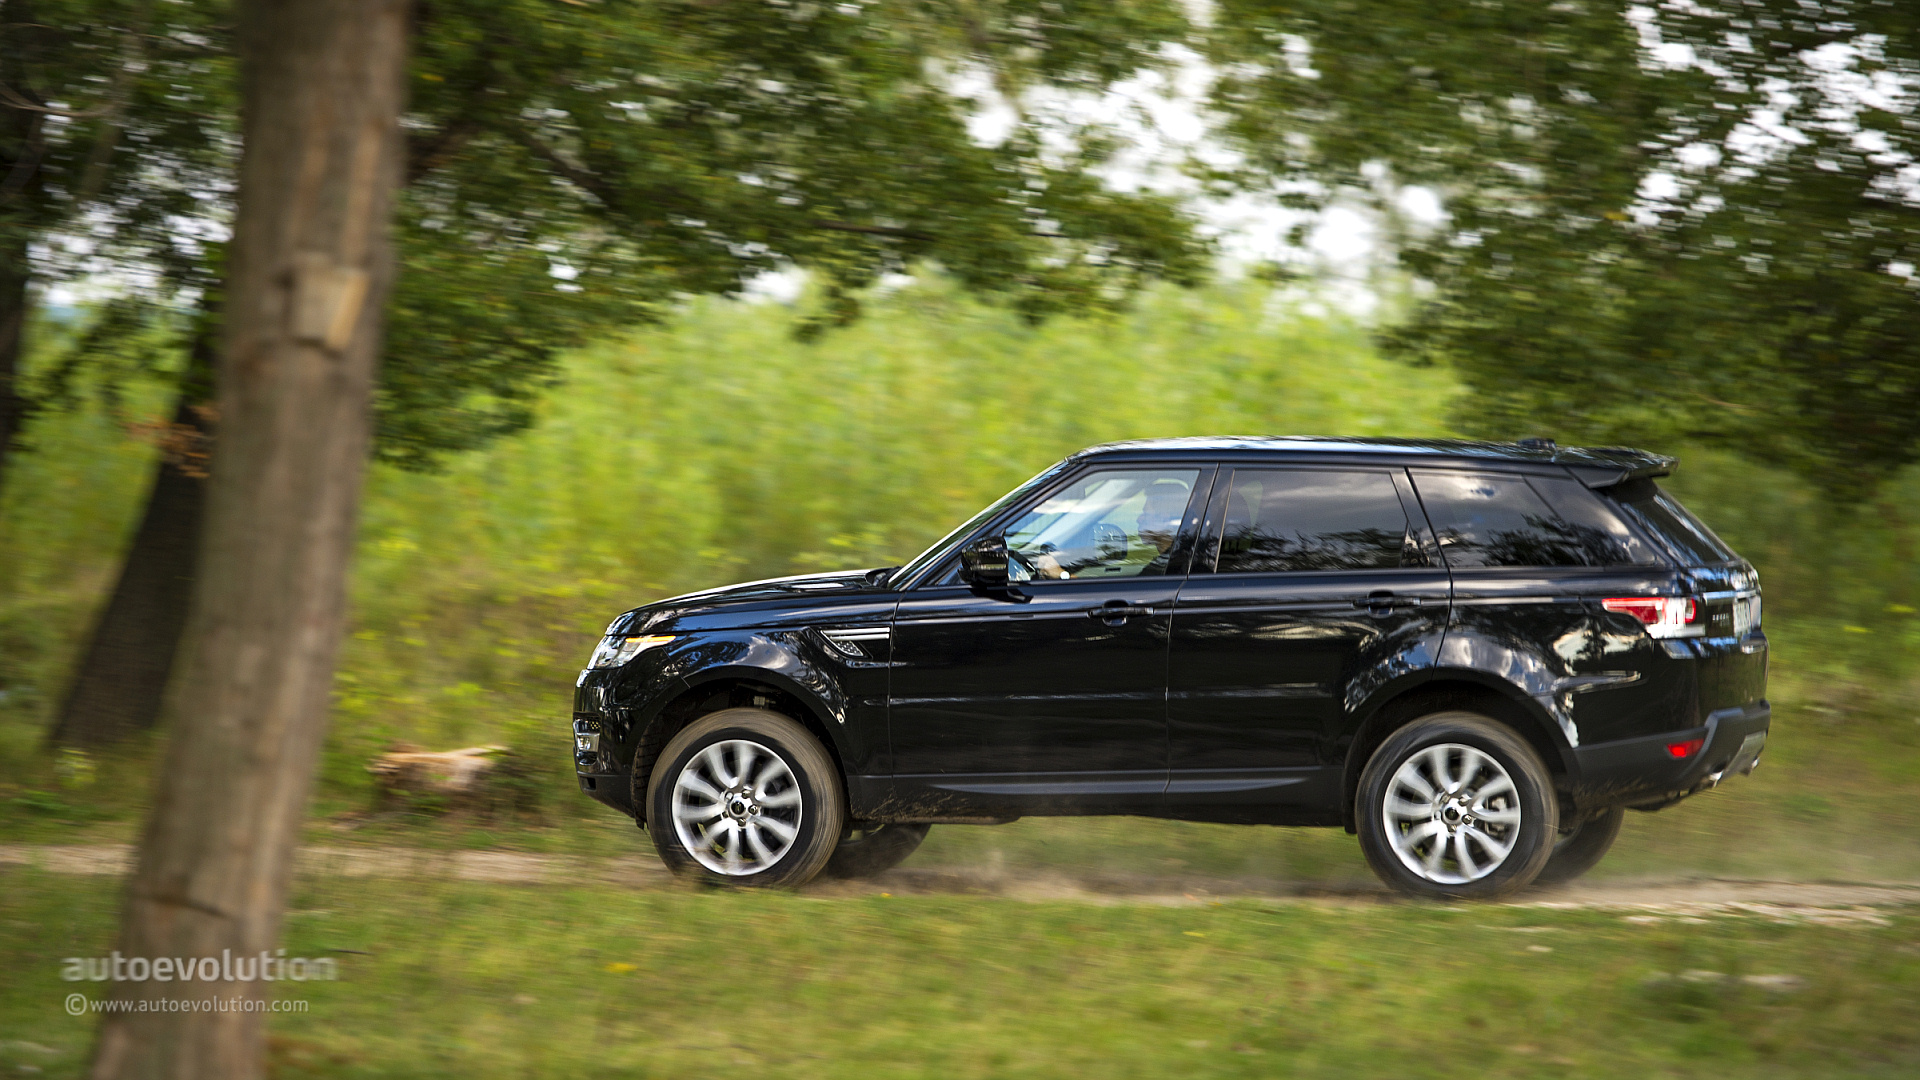 2014 range rover sport review autoevolution. Black Bedroom Furniture Sets. Home Design Ideas